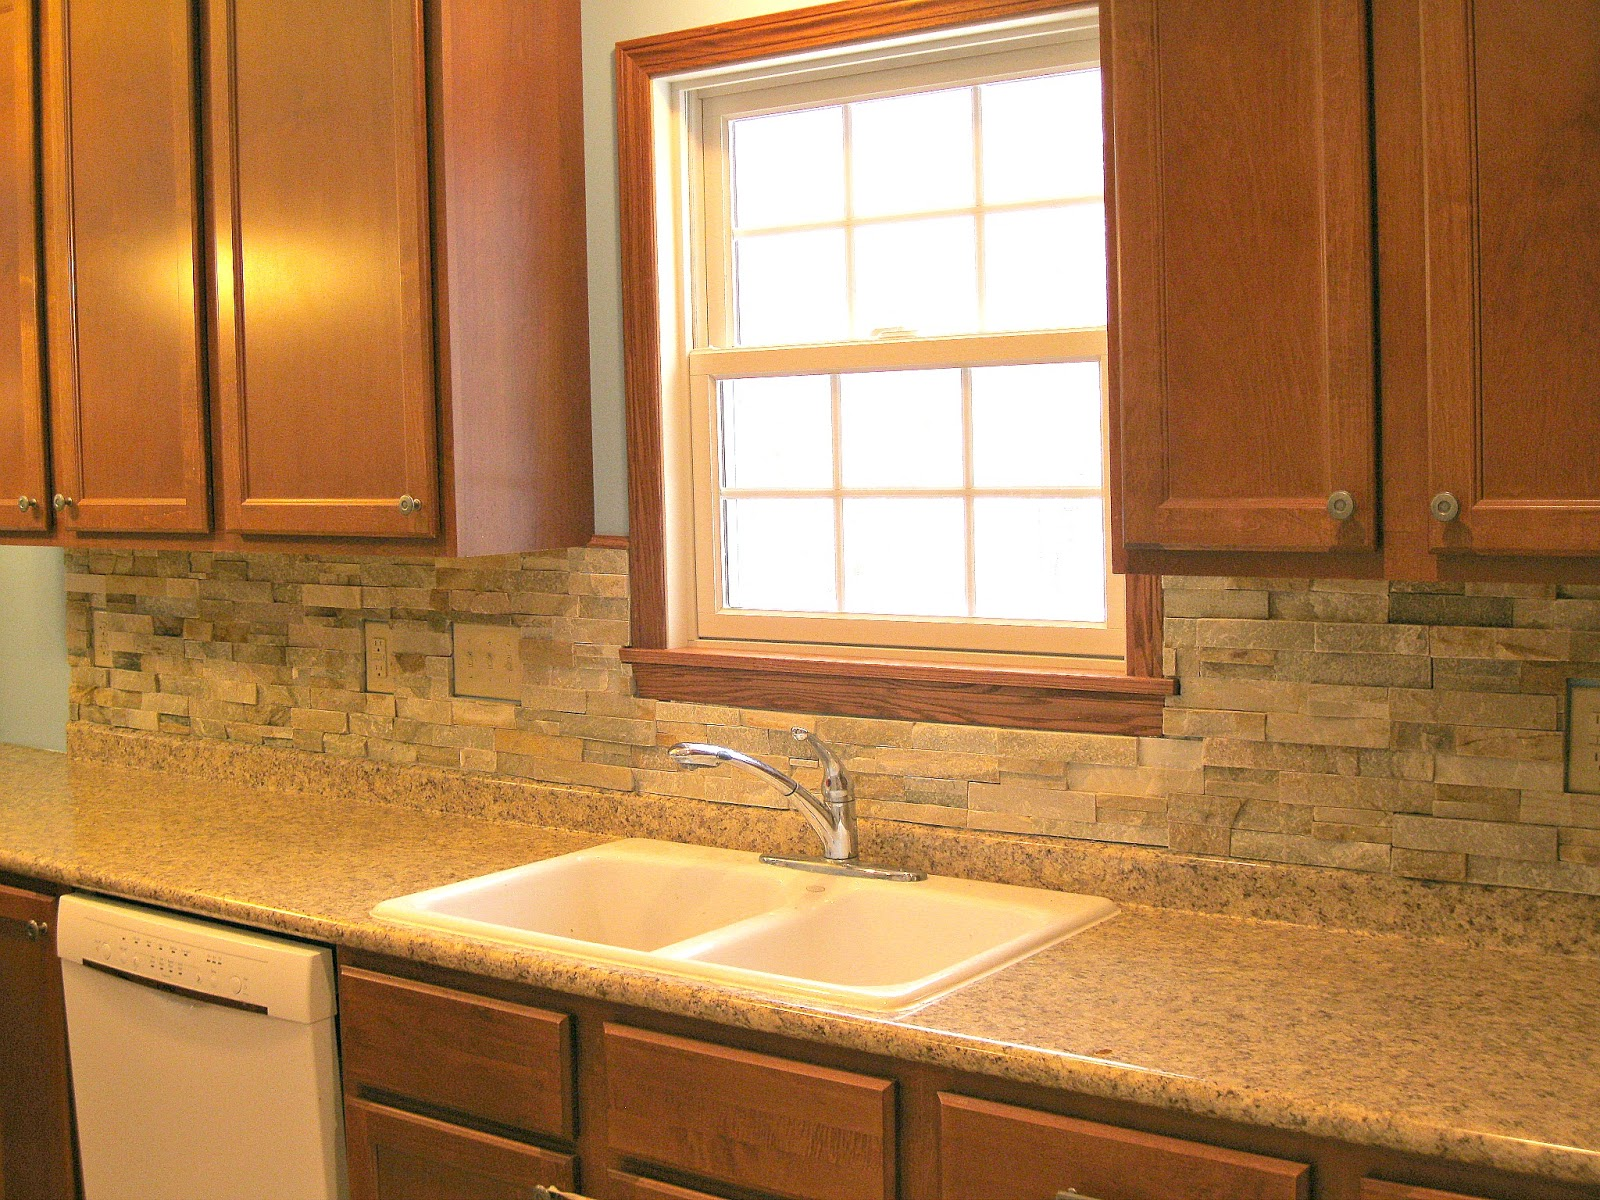 Images Of Kitchen Backsplashes Kitchen Counter Backsplash Ideas Pictures Kitchen Design